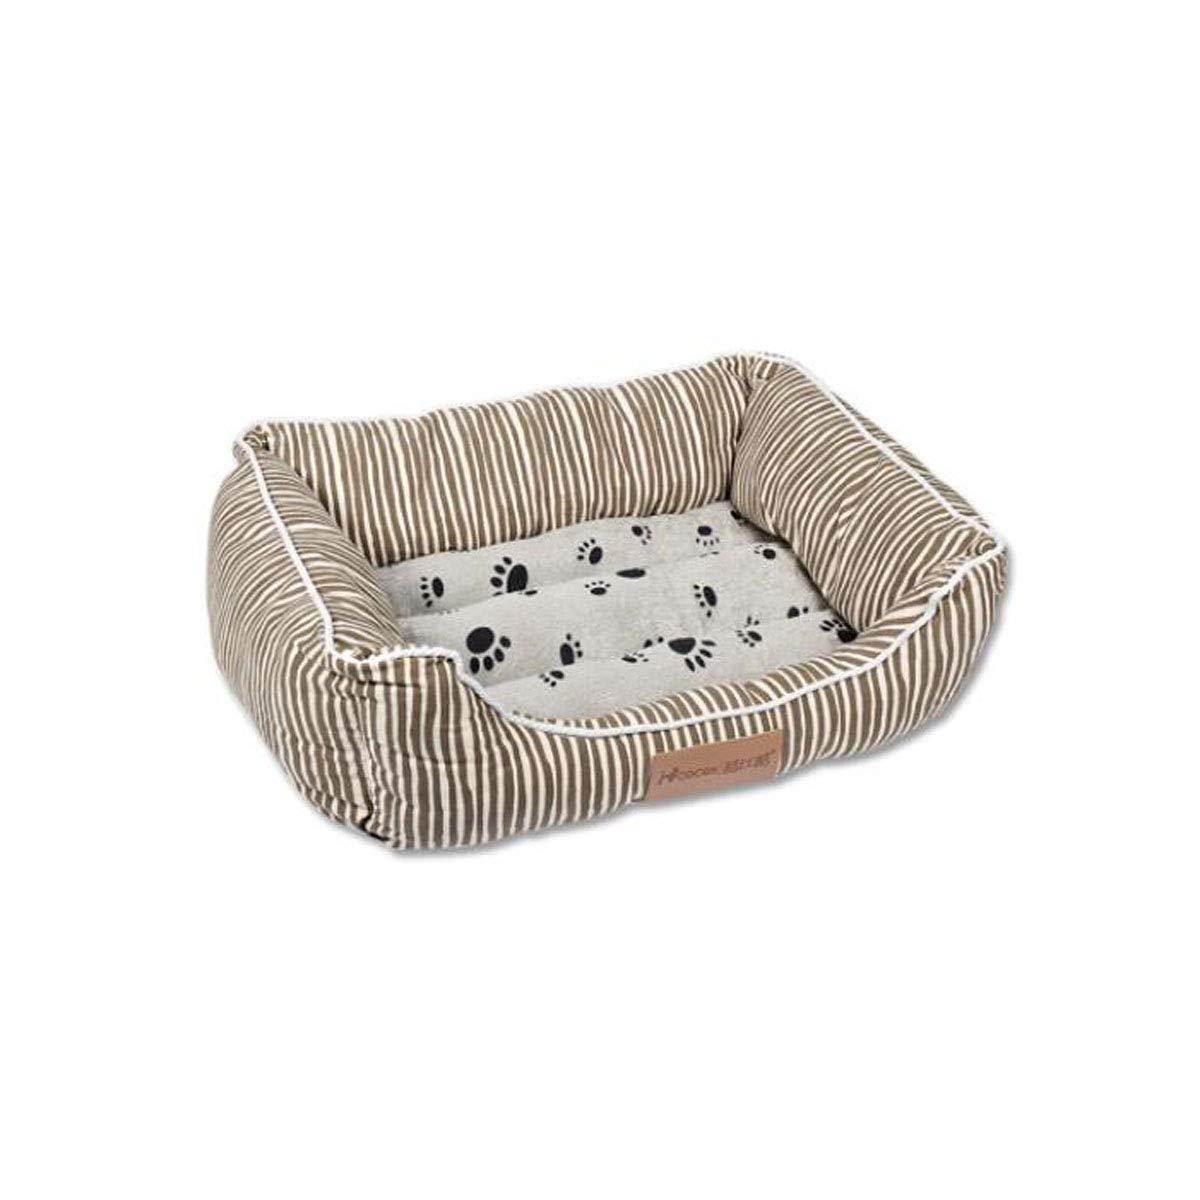 Brown bed M Brown bed M 8haowenju Dog Bed,Winter Cat Kennel Long-haired Pet Nest Deep Sleep Nest Teddy Small Medium Dog Bed Comfortable and Comfortable (color   Brown Bed, Size   M)